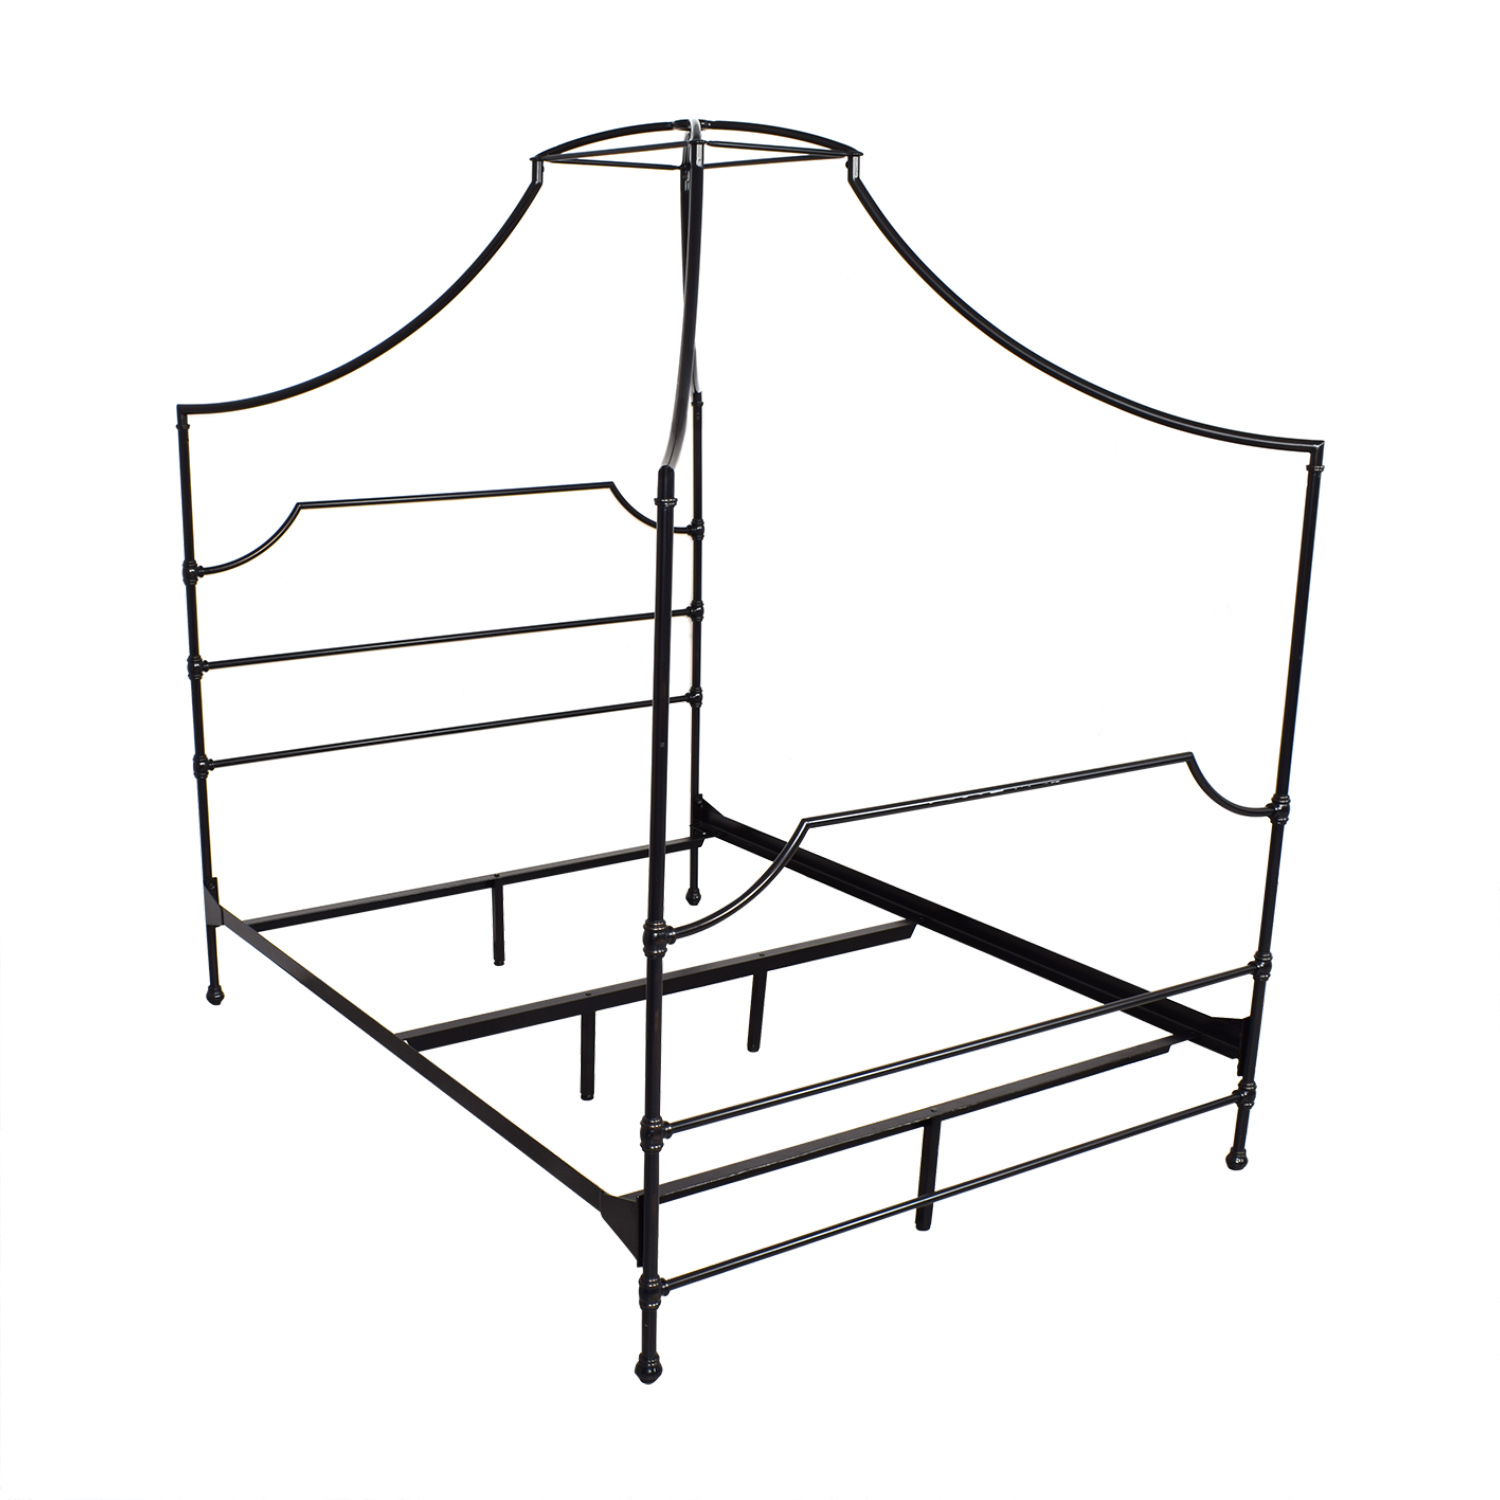 Pottery Barn Teen Pottery Barn Teen Full Maison Canopy Bed black